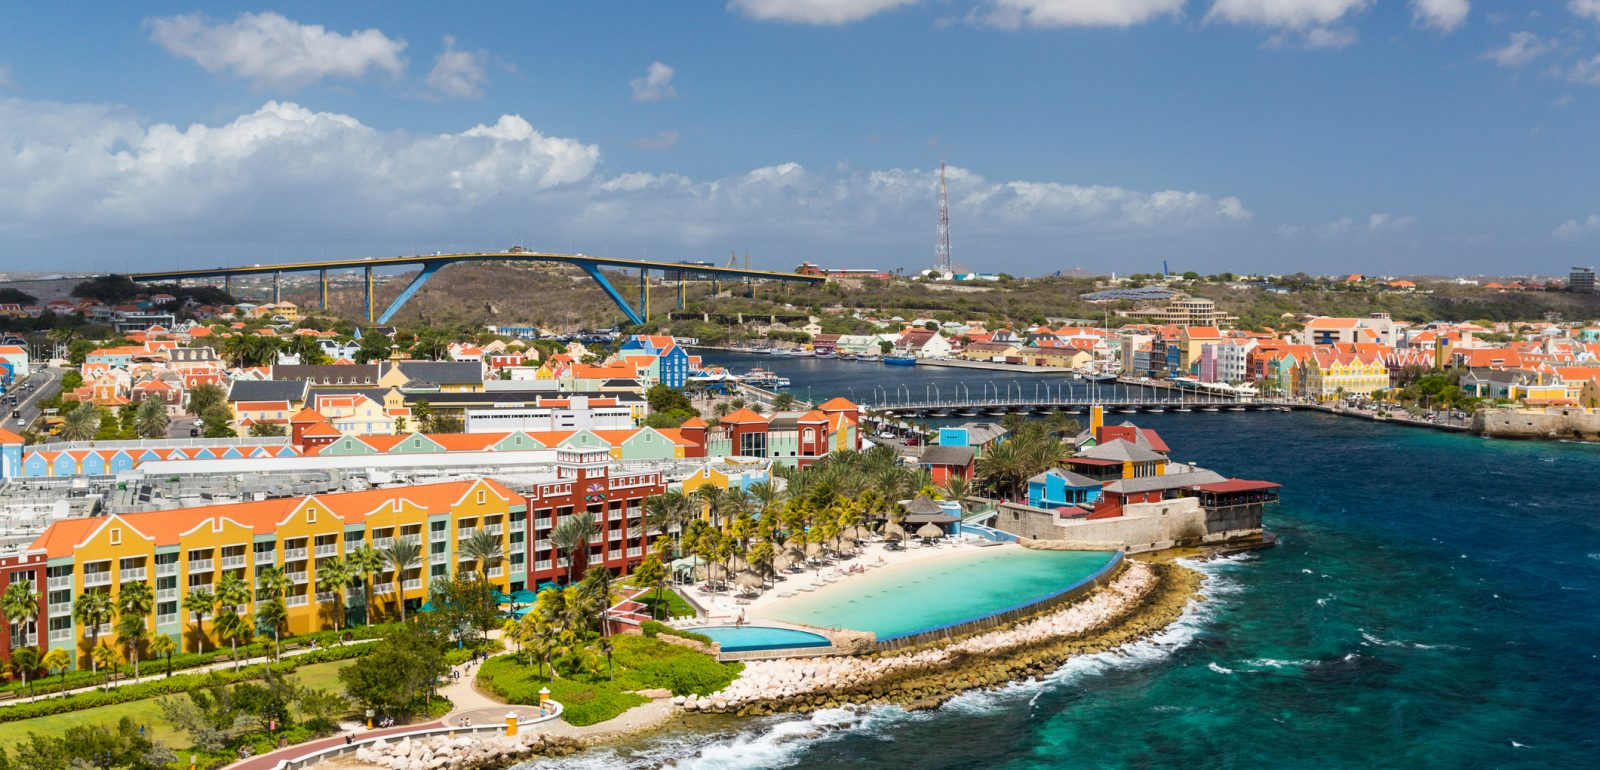 Renaissance Curacao Resort & Casino